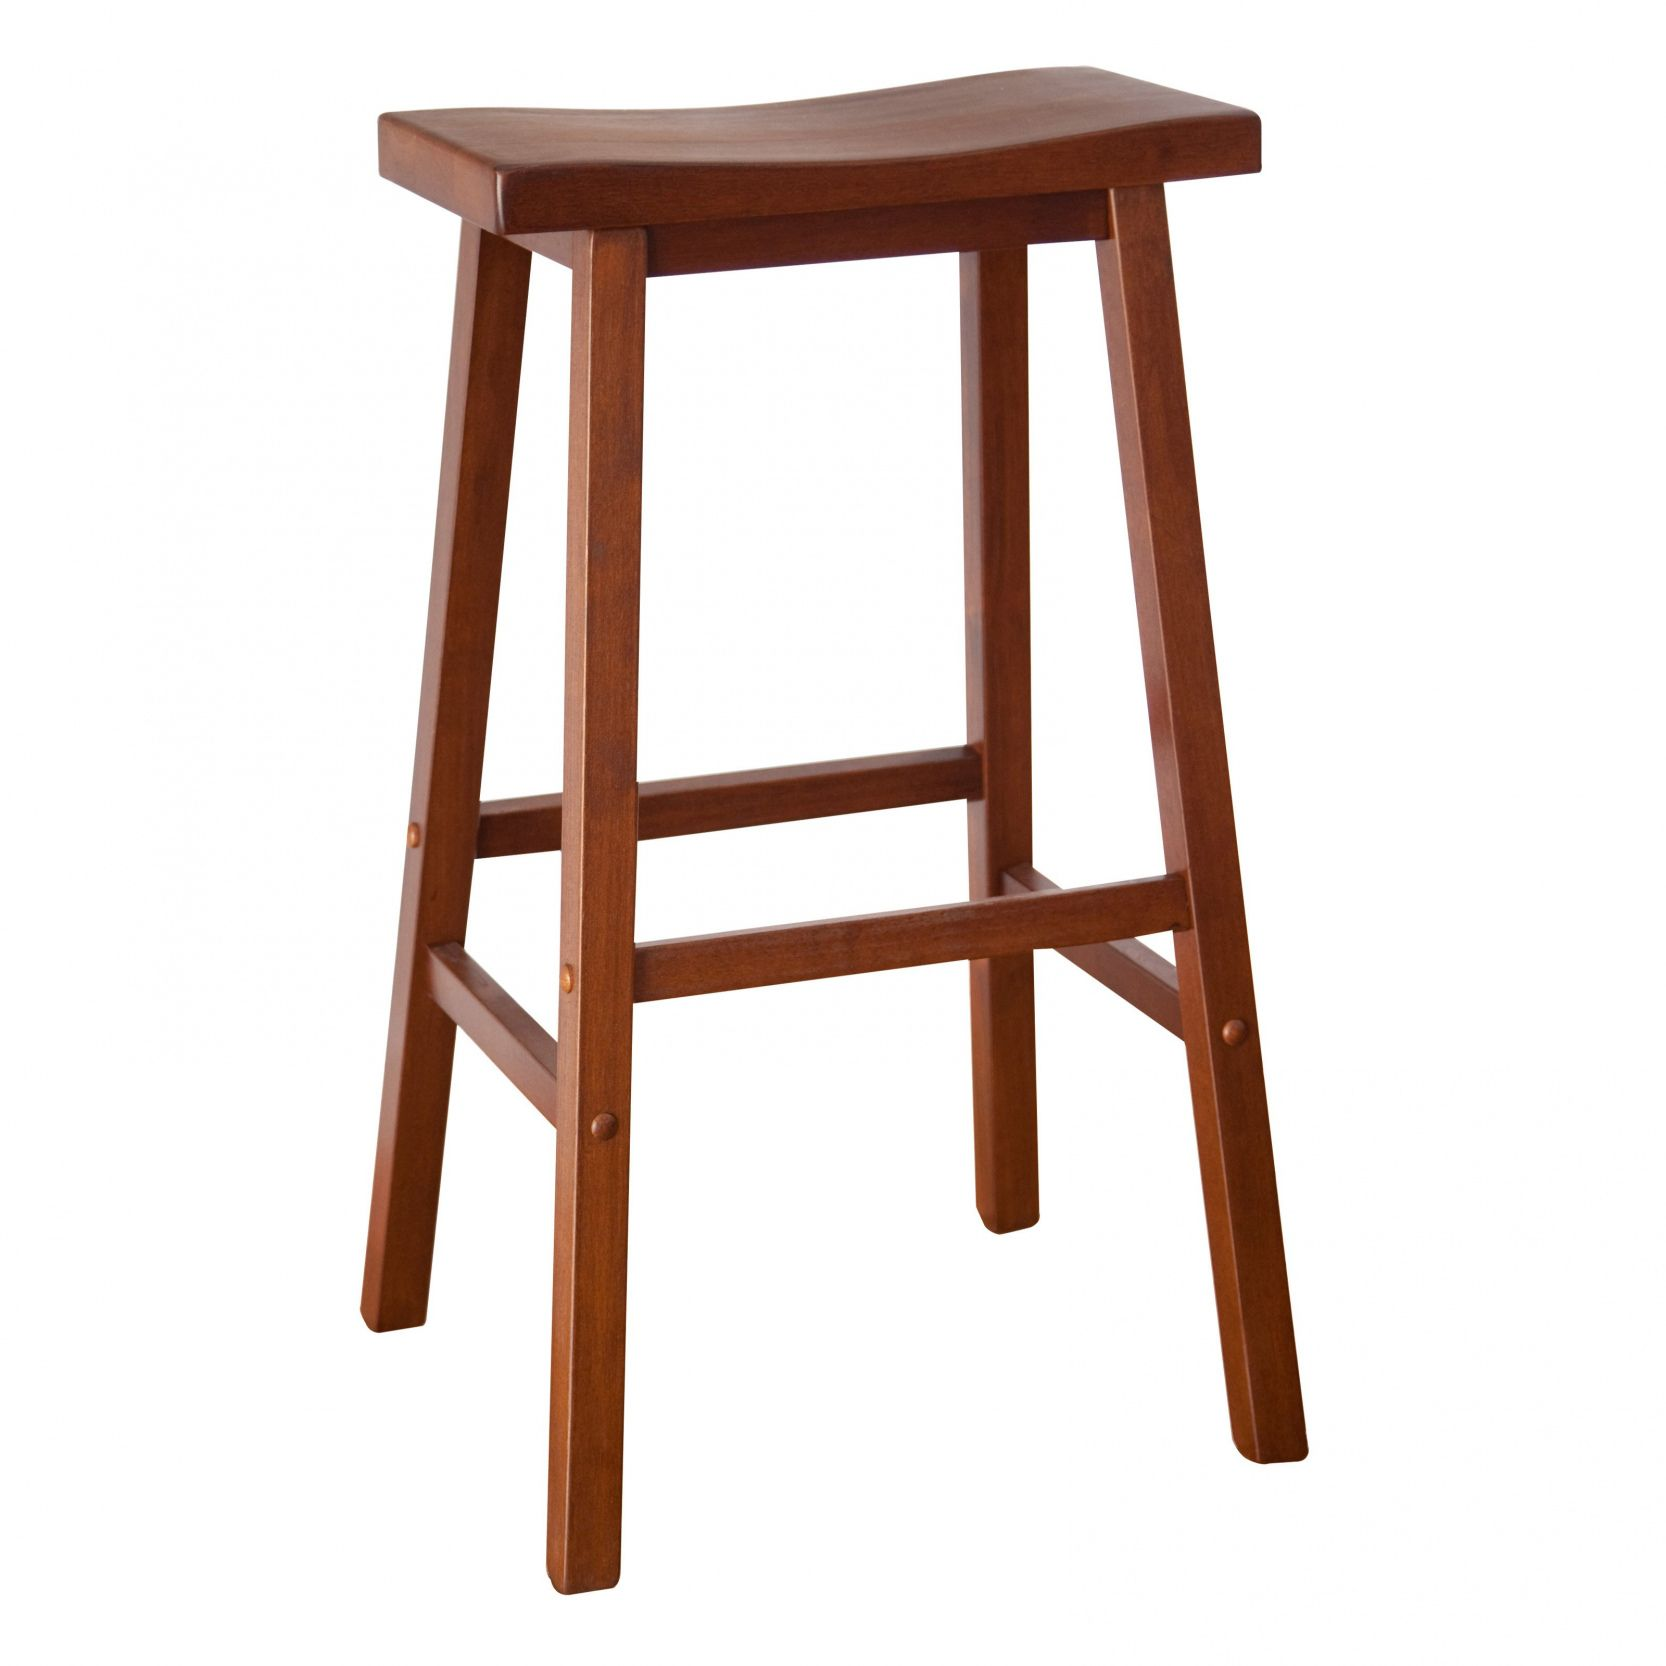 2019 34 inch bar stools target modern furniture cheap check more at http